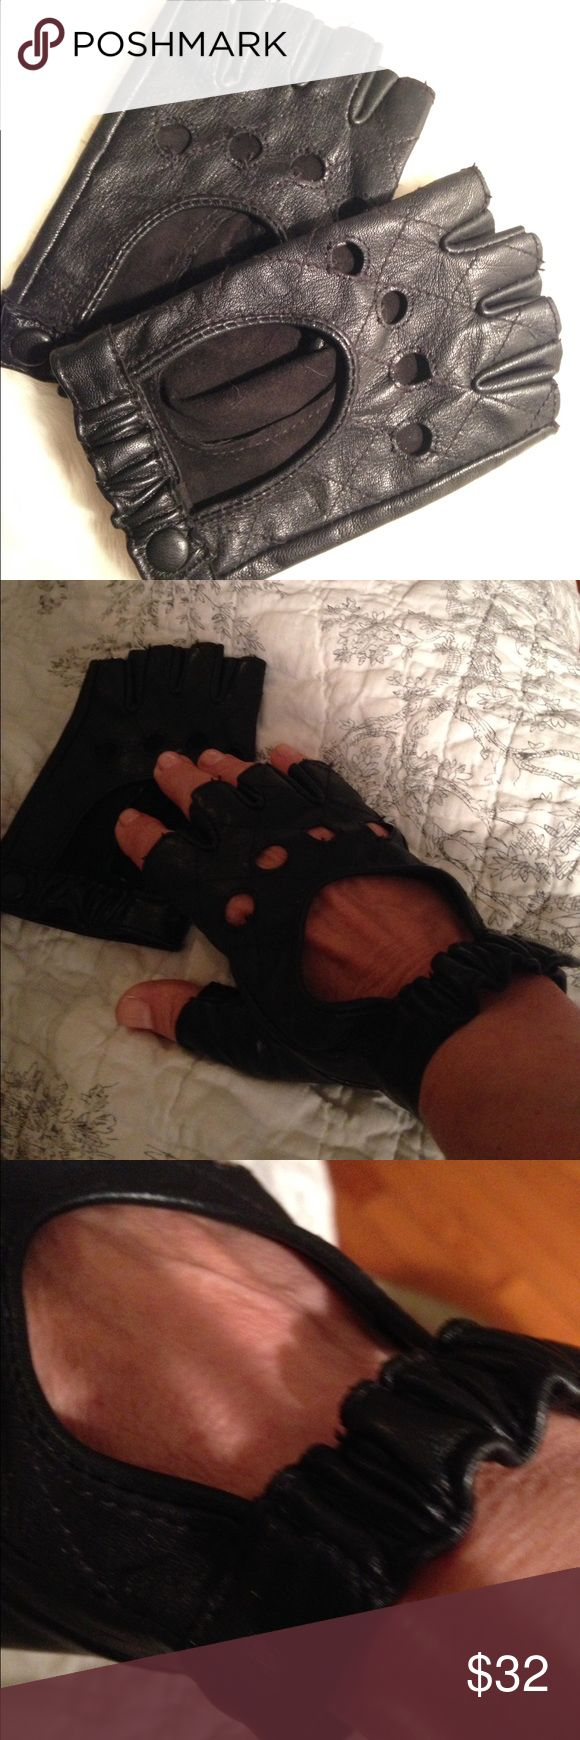 NWOT leather driving gloves👸🏻 Never worn. Just tried on. Fits small with strap that snaps and stretches. Had to have when I saw them on Carole radziwill my fav ny housewife Accessories Gloves & Mittens